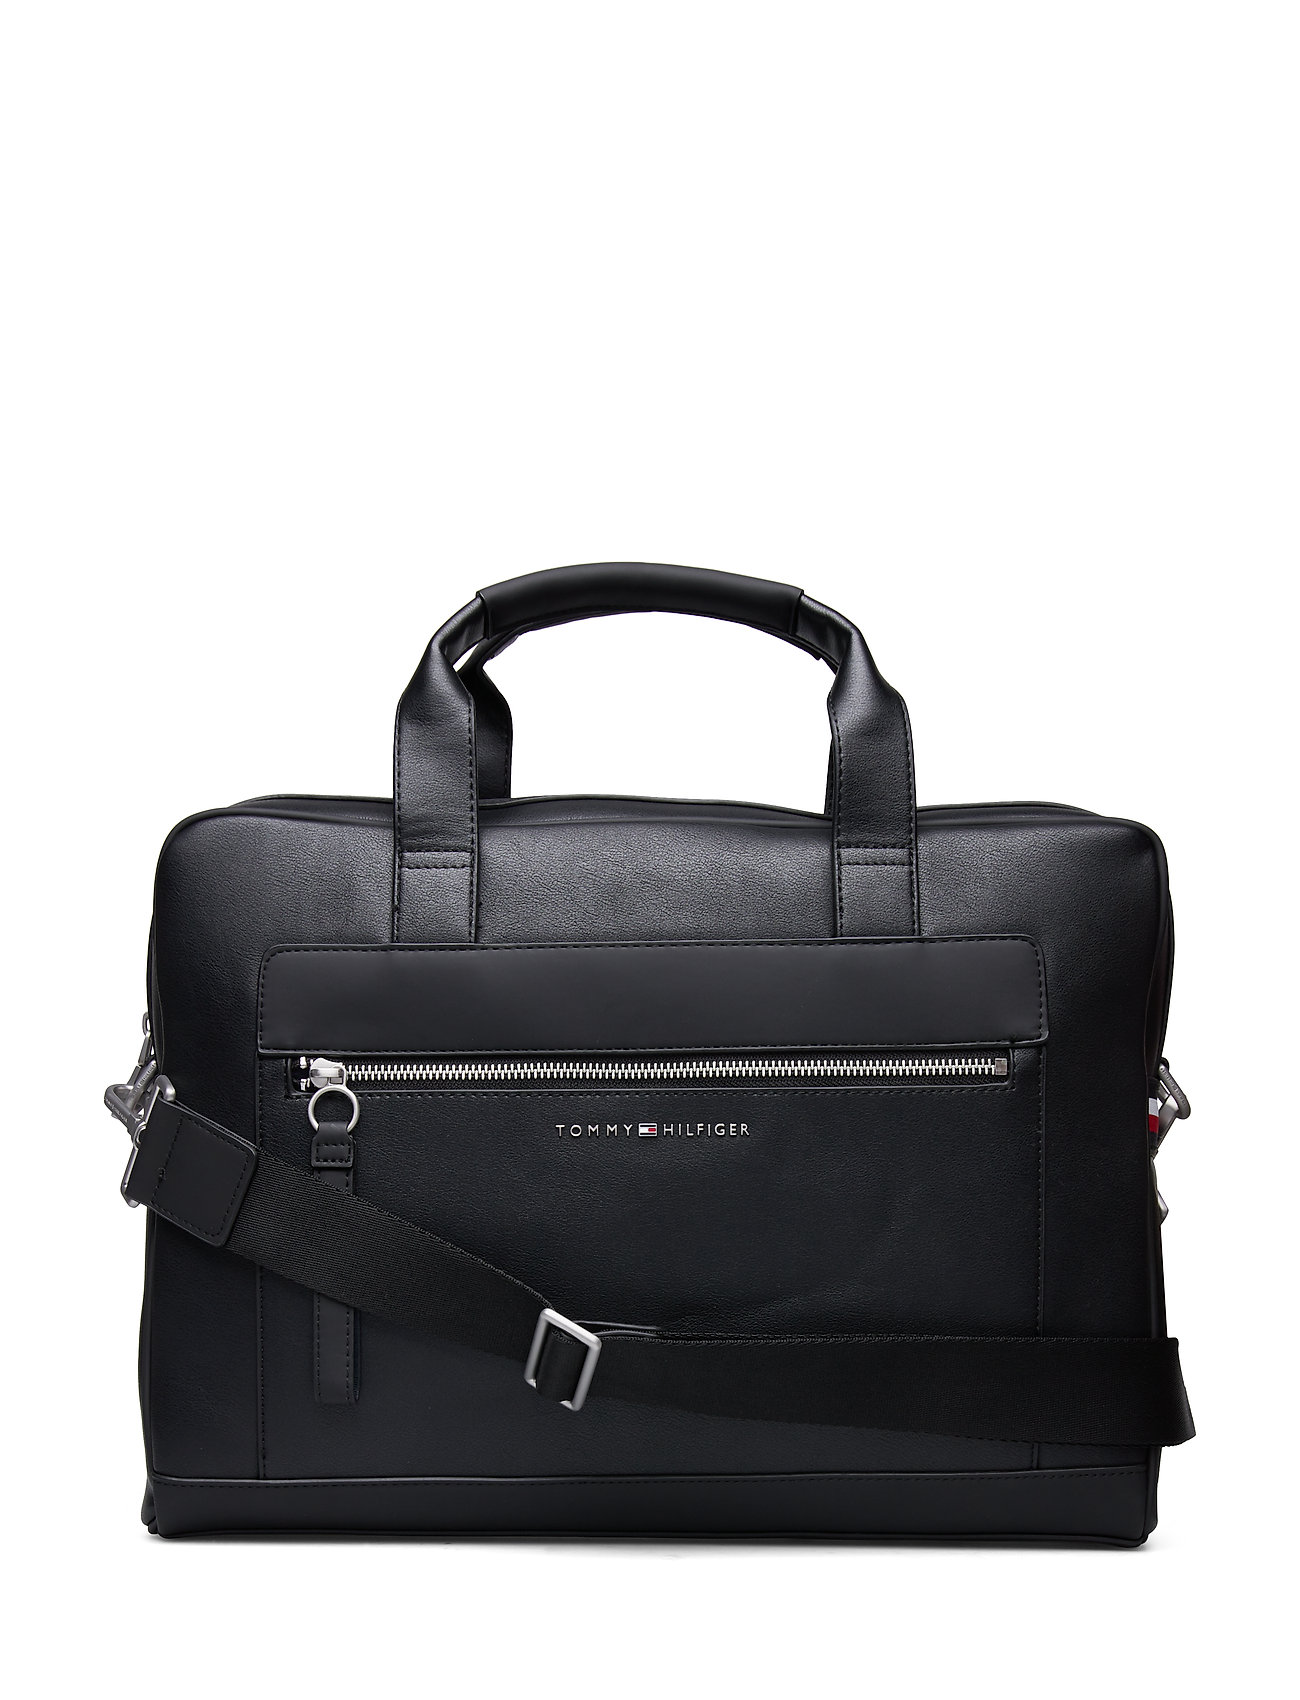 Tommy Hilfiger TH METRO COMPUTER BA - BLACK